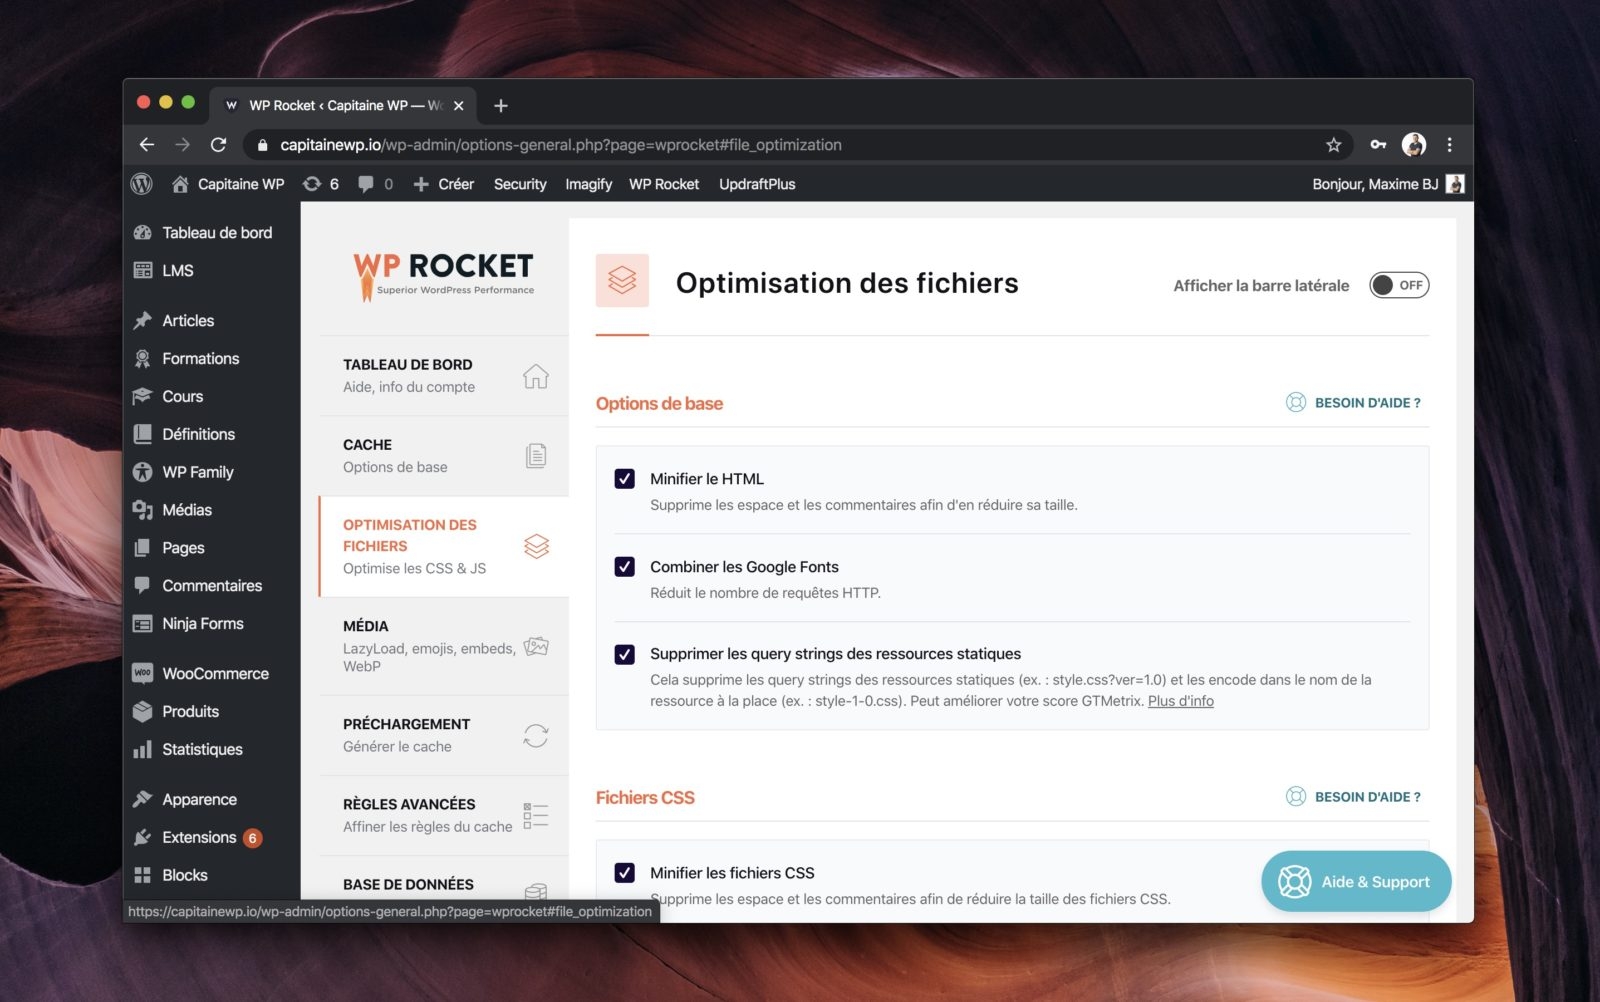 Capture d'écran de l'interface de configuration de WP Rocket